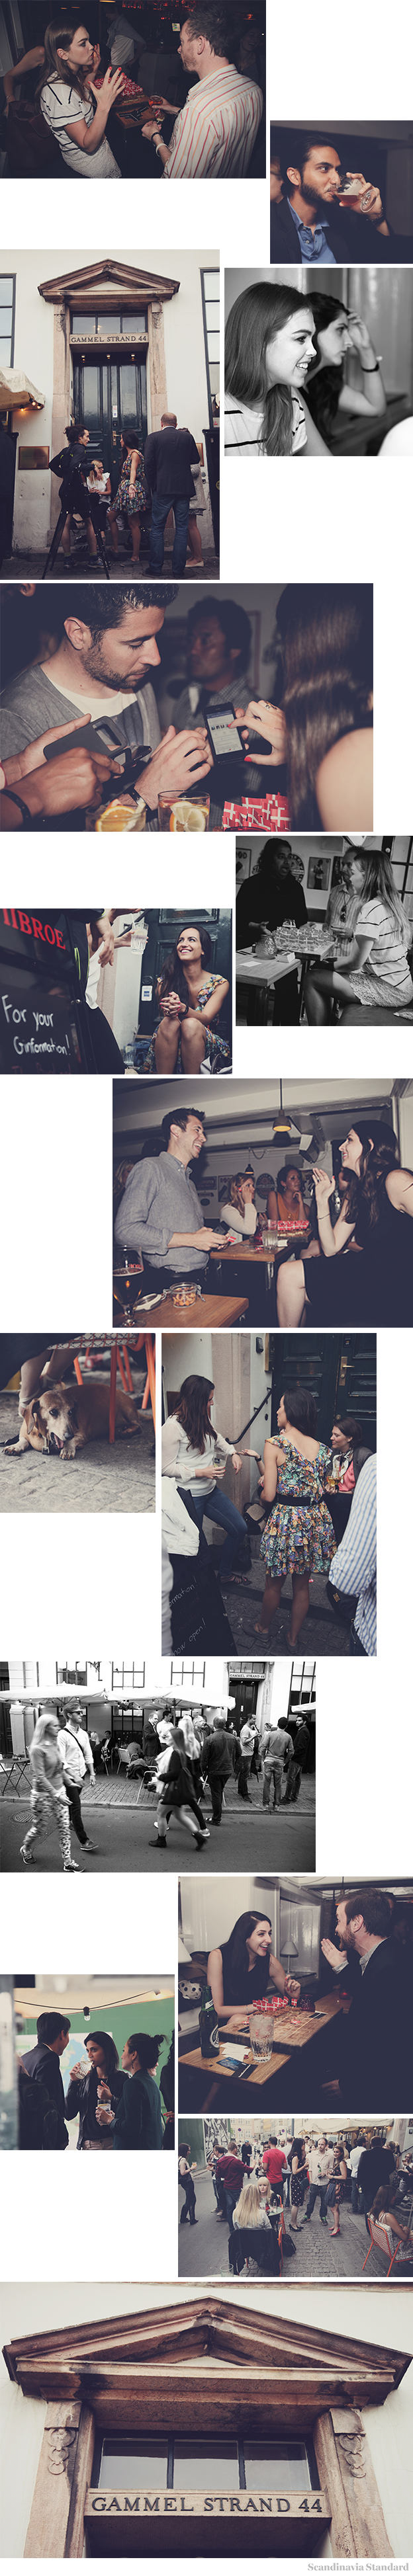 Scandinavia Standard Drinks With Friends of Friends Launch - Collage